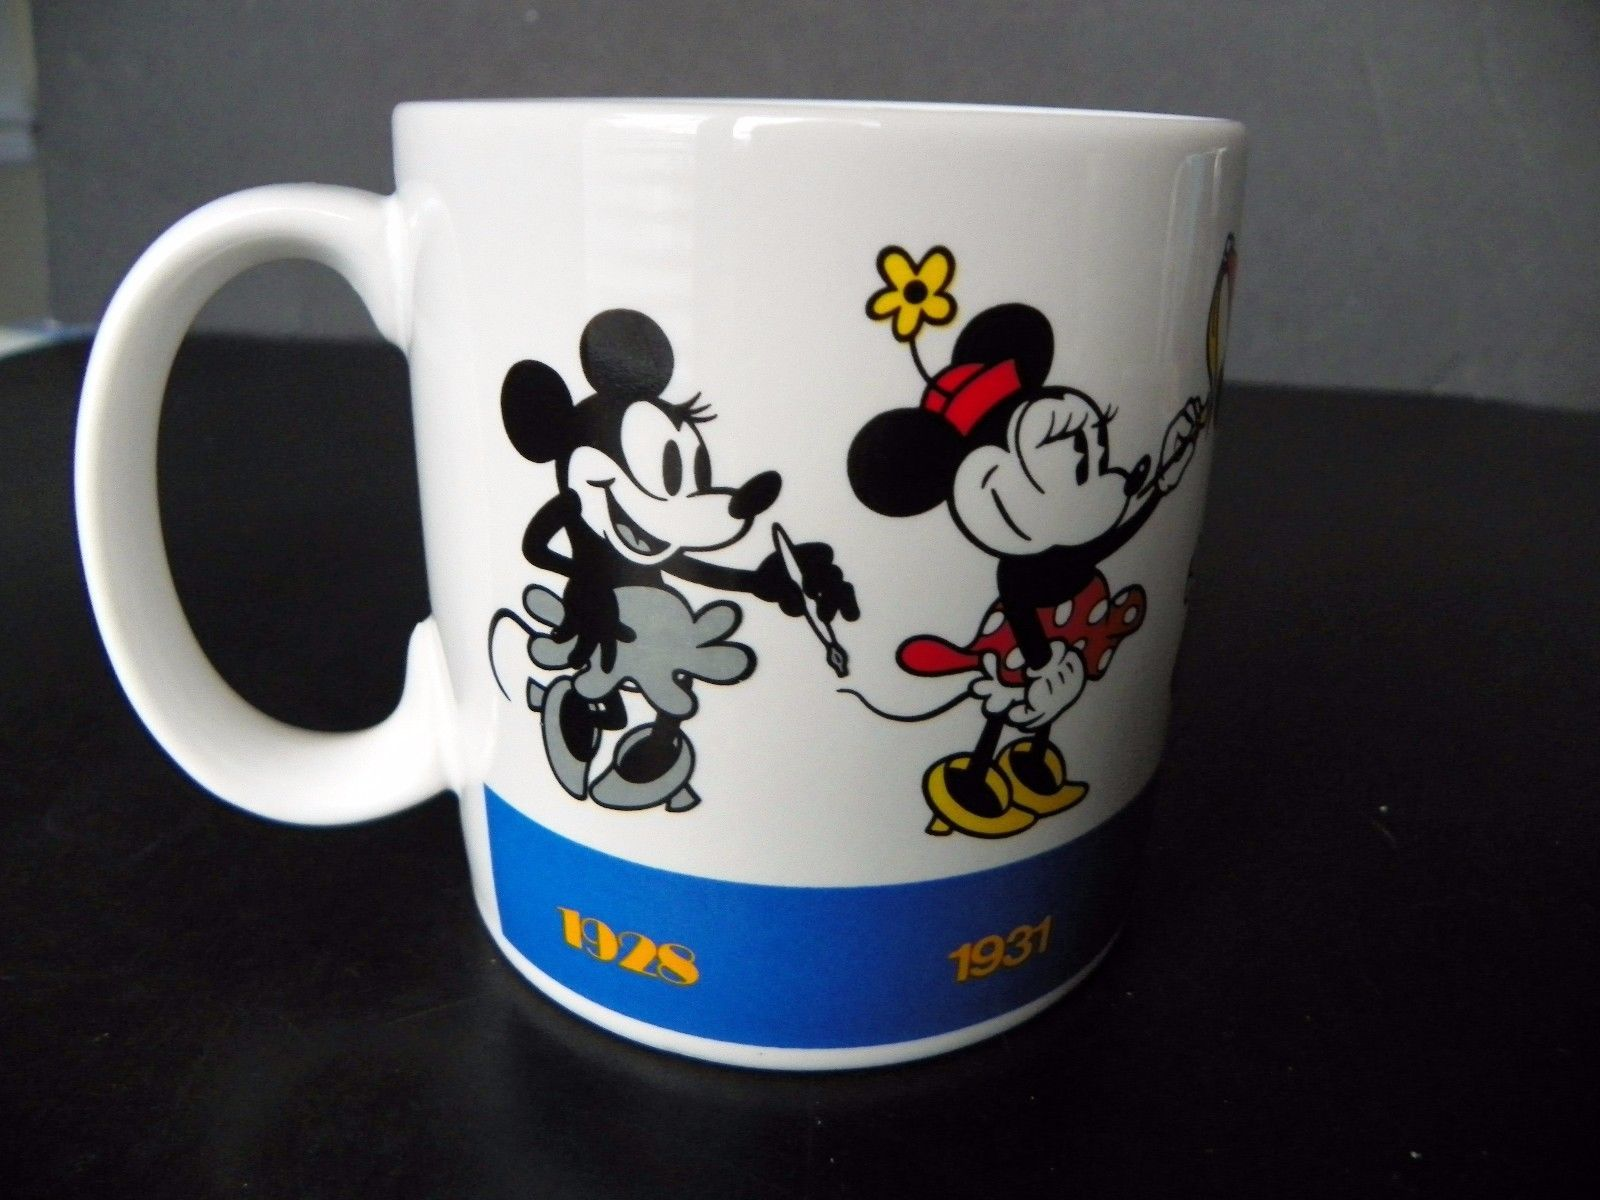 Disney Through And 20 Mouse Items Applause Similar Minnie Vintage tCsQhdr